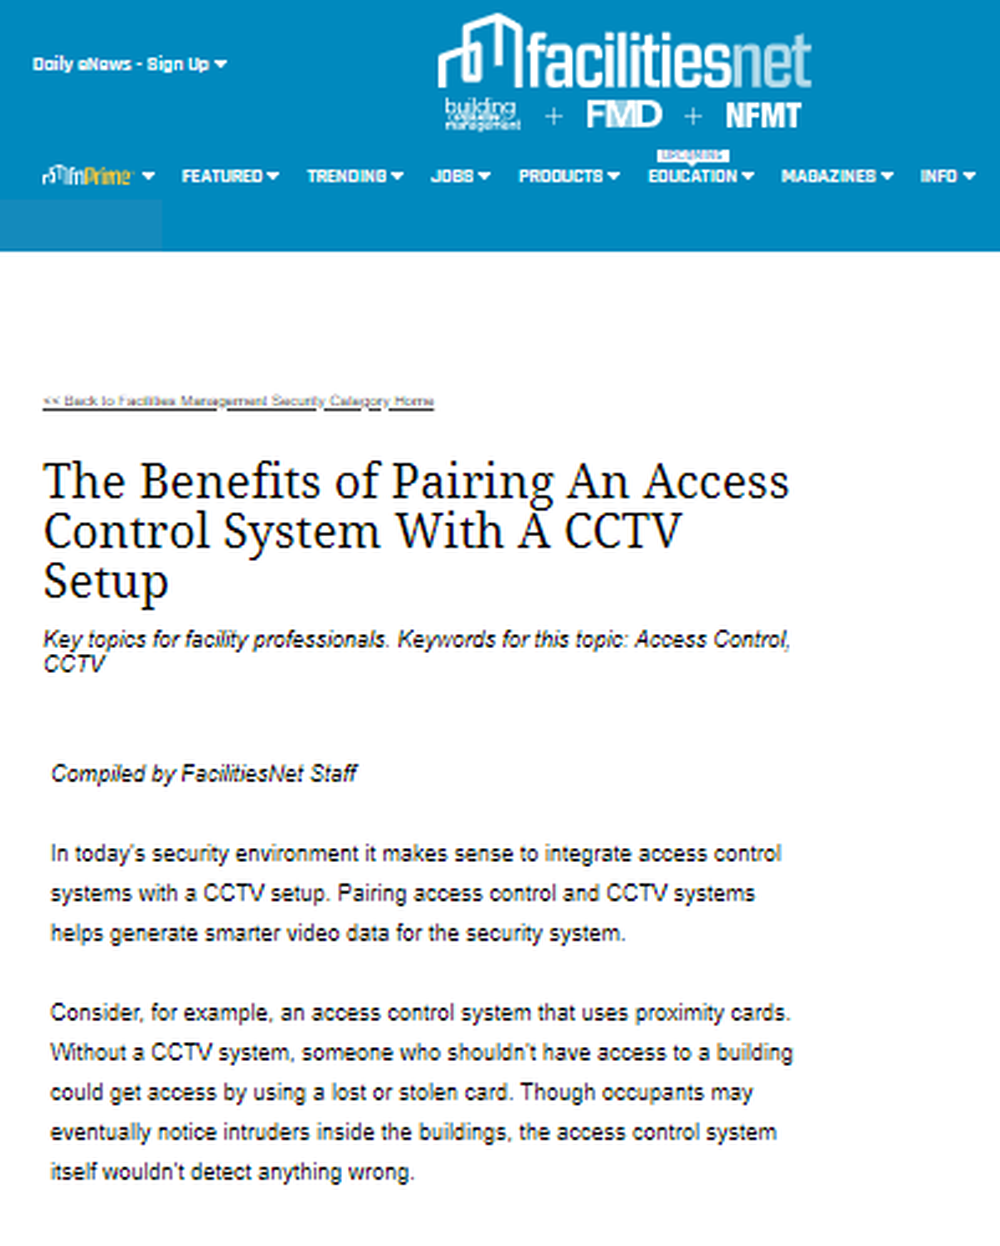 The-Benefits-of-Pairing-An-Access-Control-System-With-A-CCTV-Setup-Security-Coverage.png